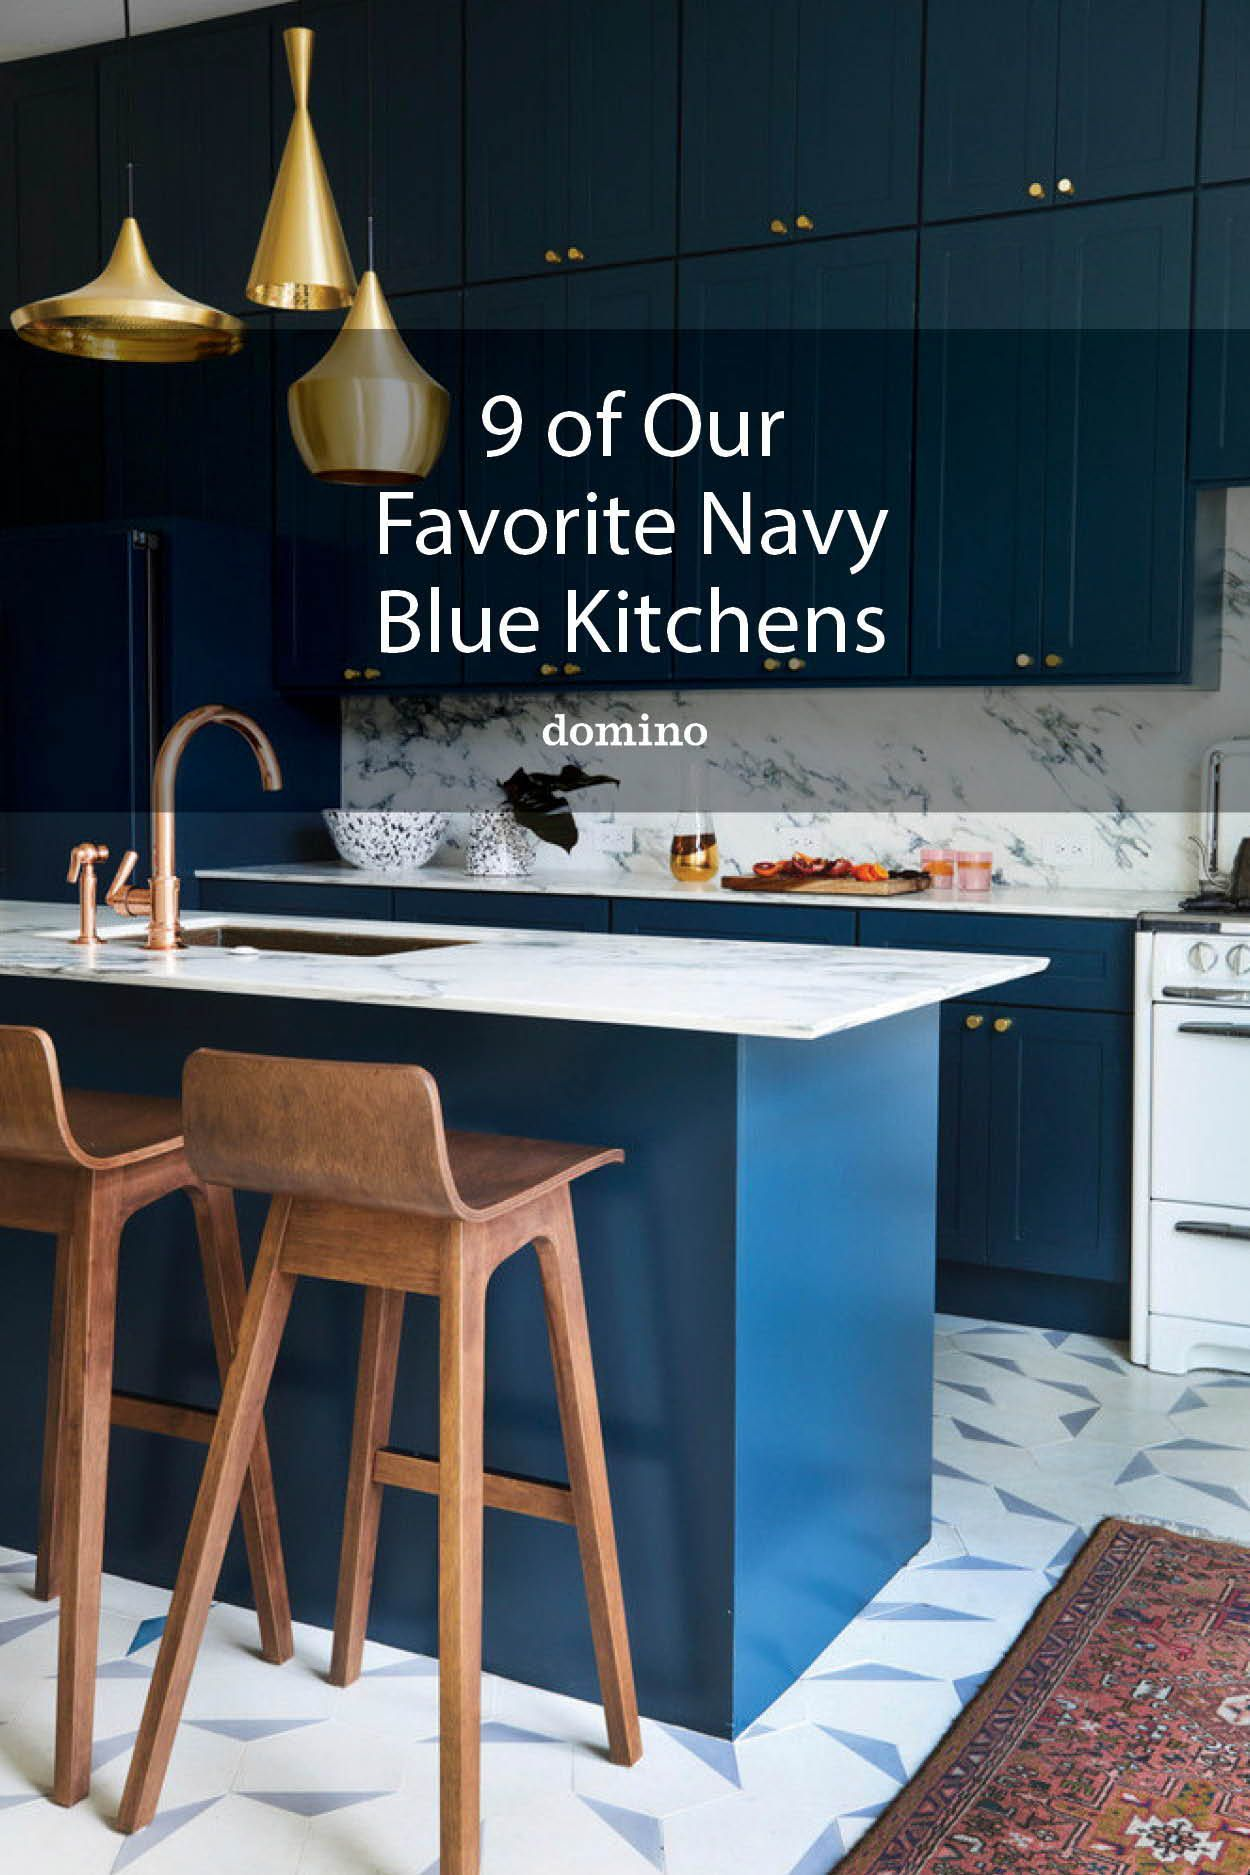 Navy Kitchen Cabinets Go Well with White Counters, But What Else ...